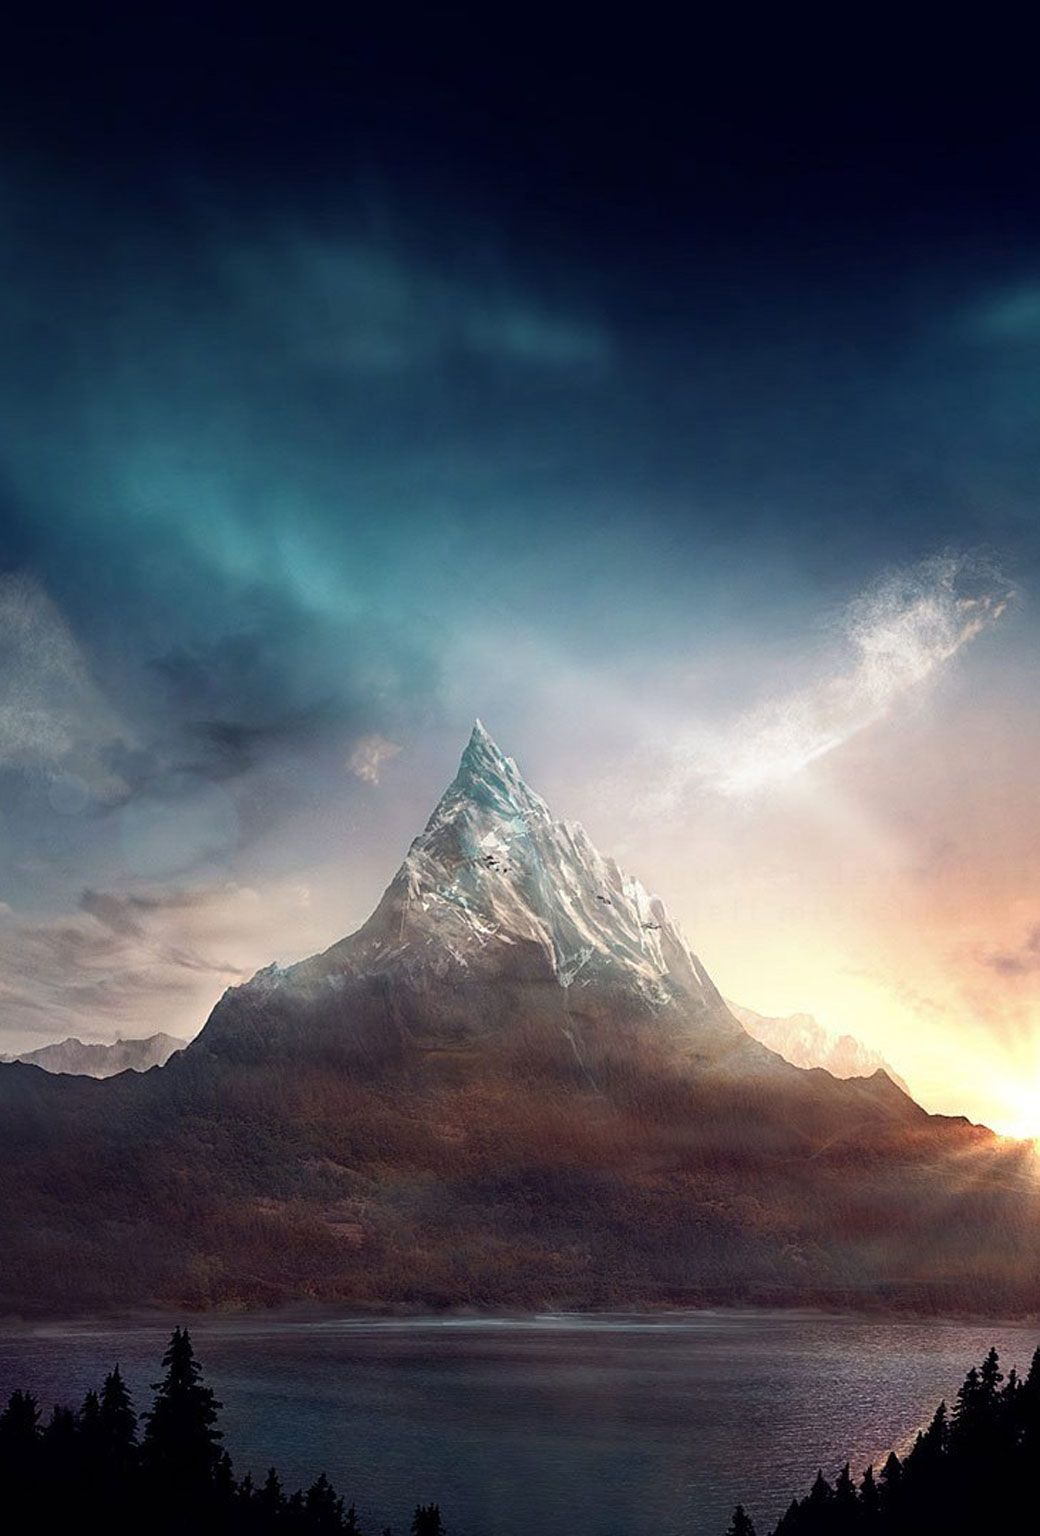 Parallax Wallpapers Com The Hobbit Lord Of The Rings Middle Earth